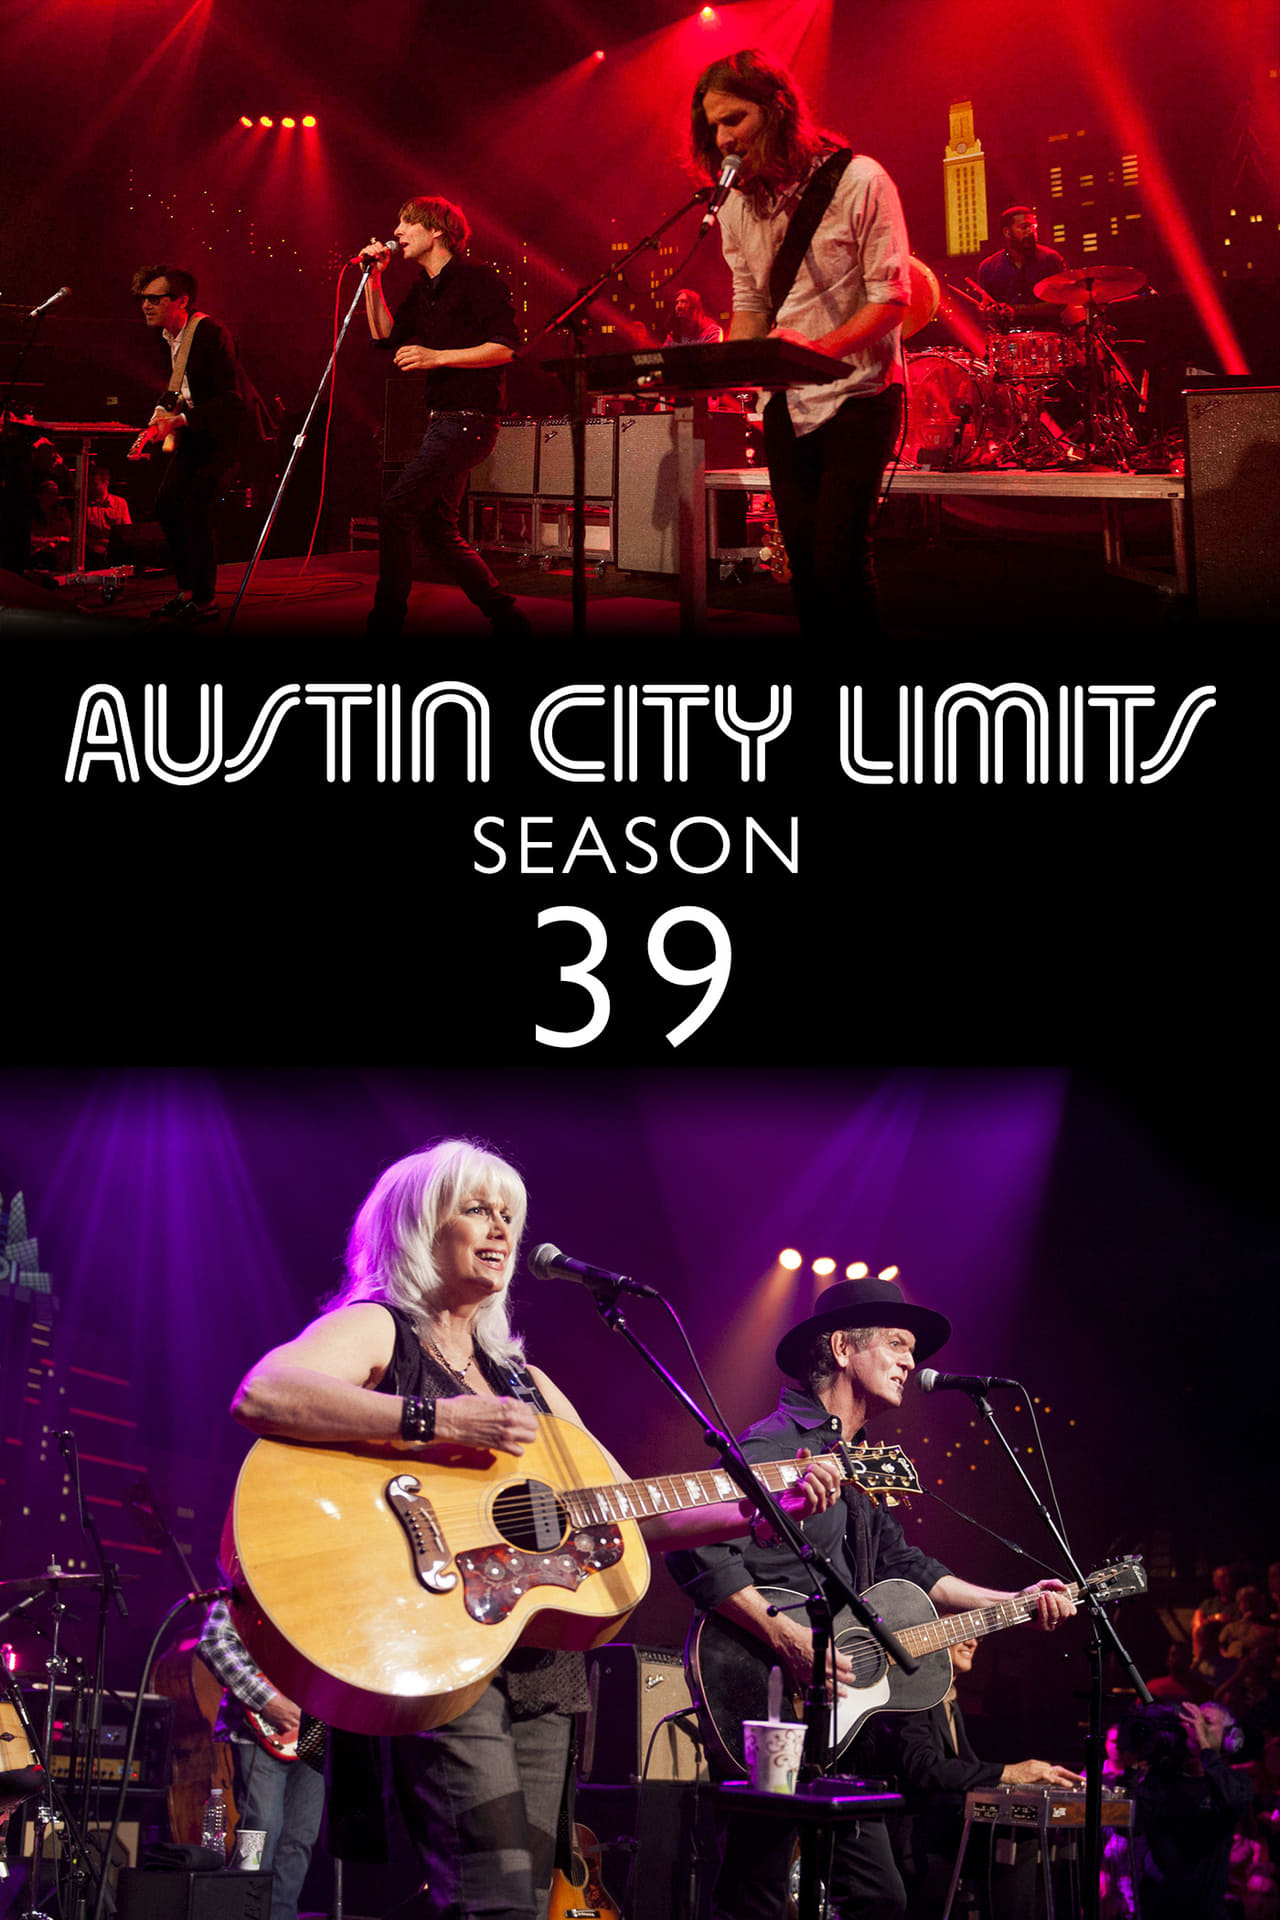 Putlocker Austin City Limits Season 39 (2013)